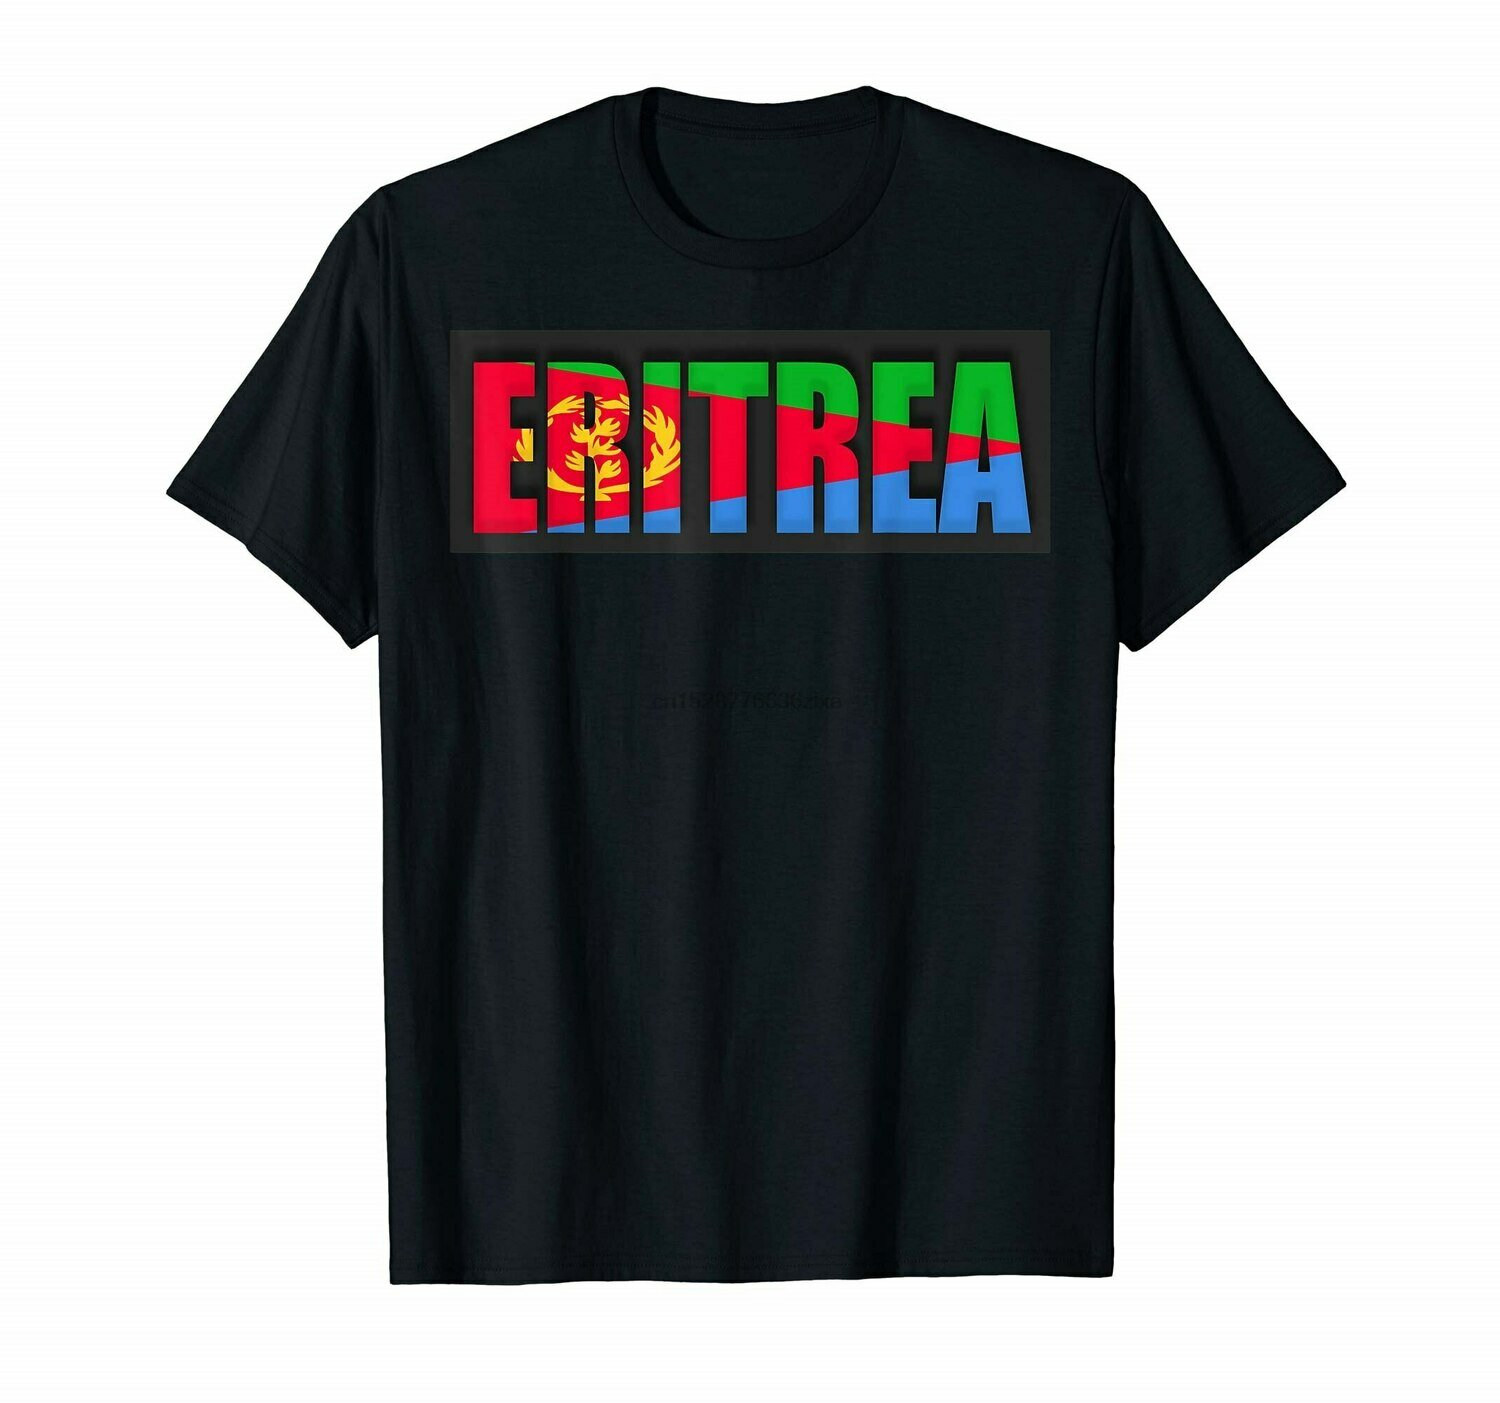 Eritrea In Eritrea Flag Eritrean T-Shirt 8207P